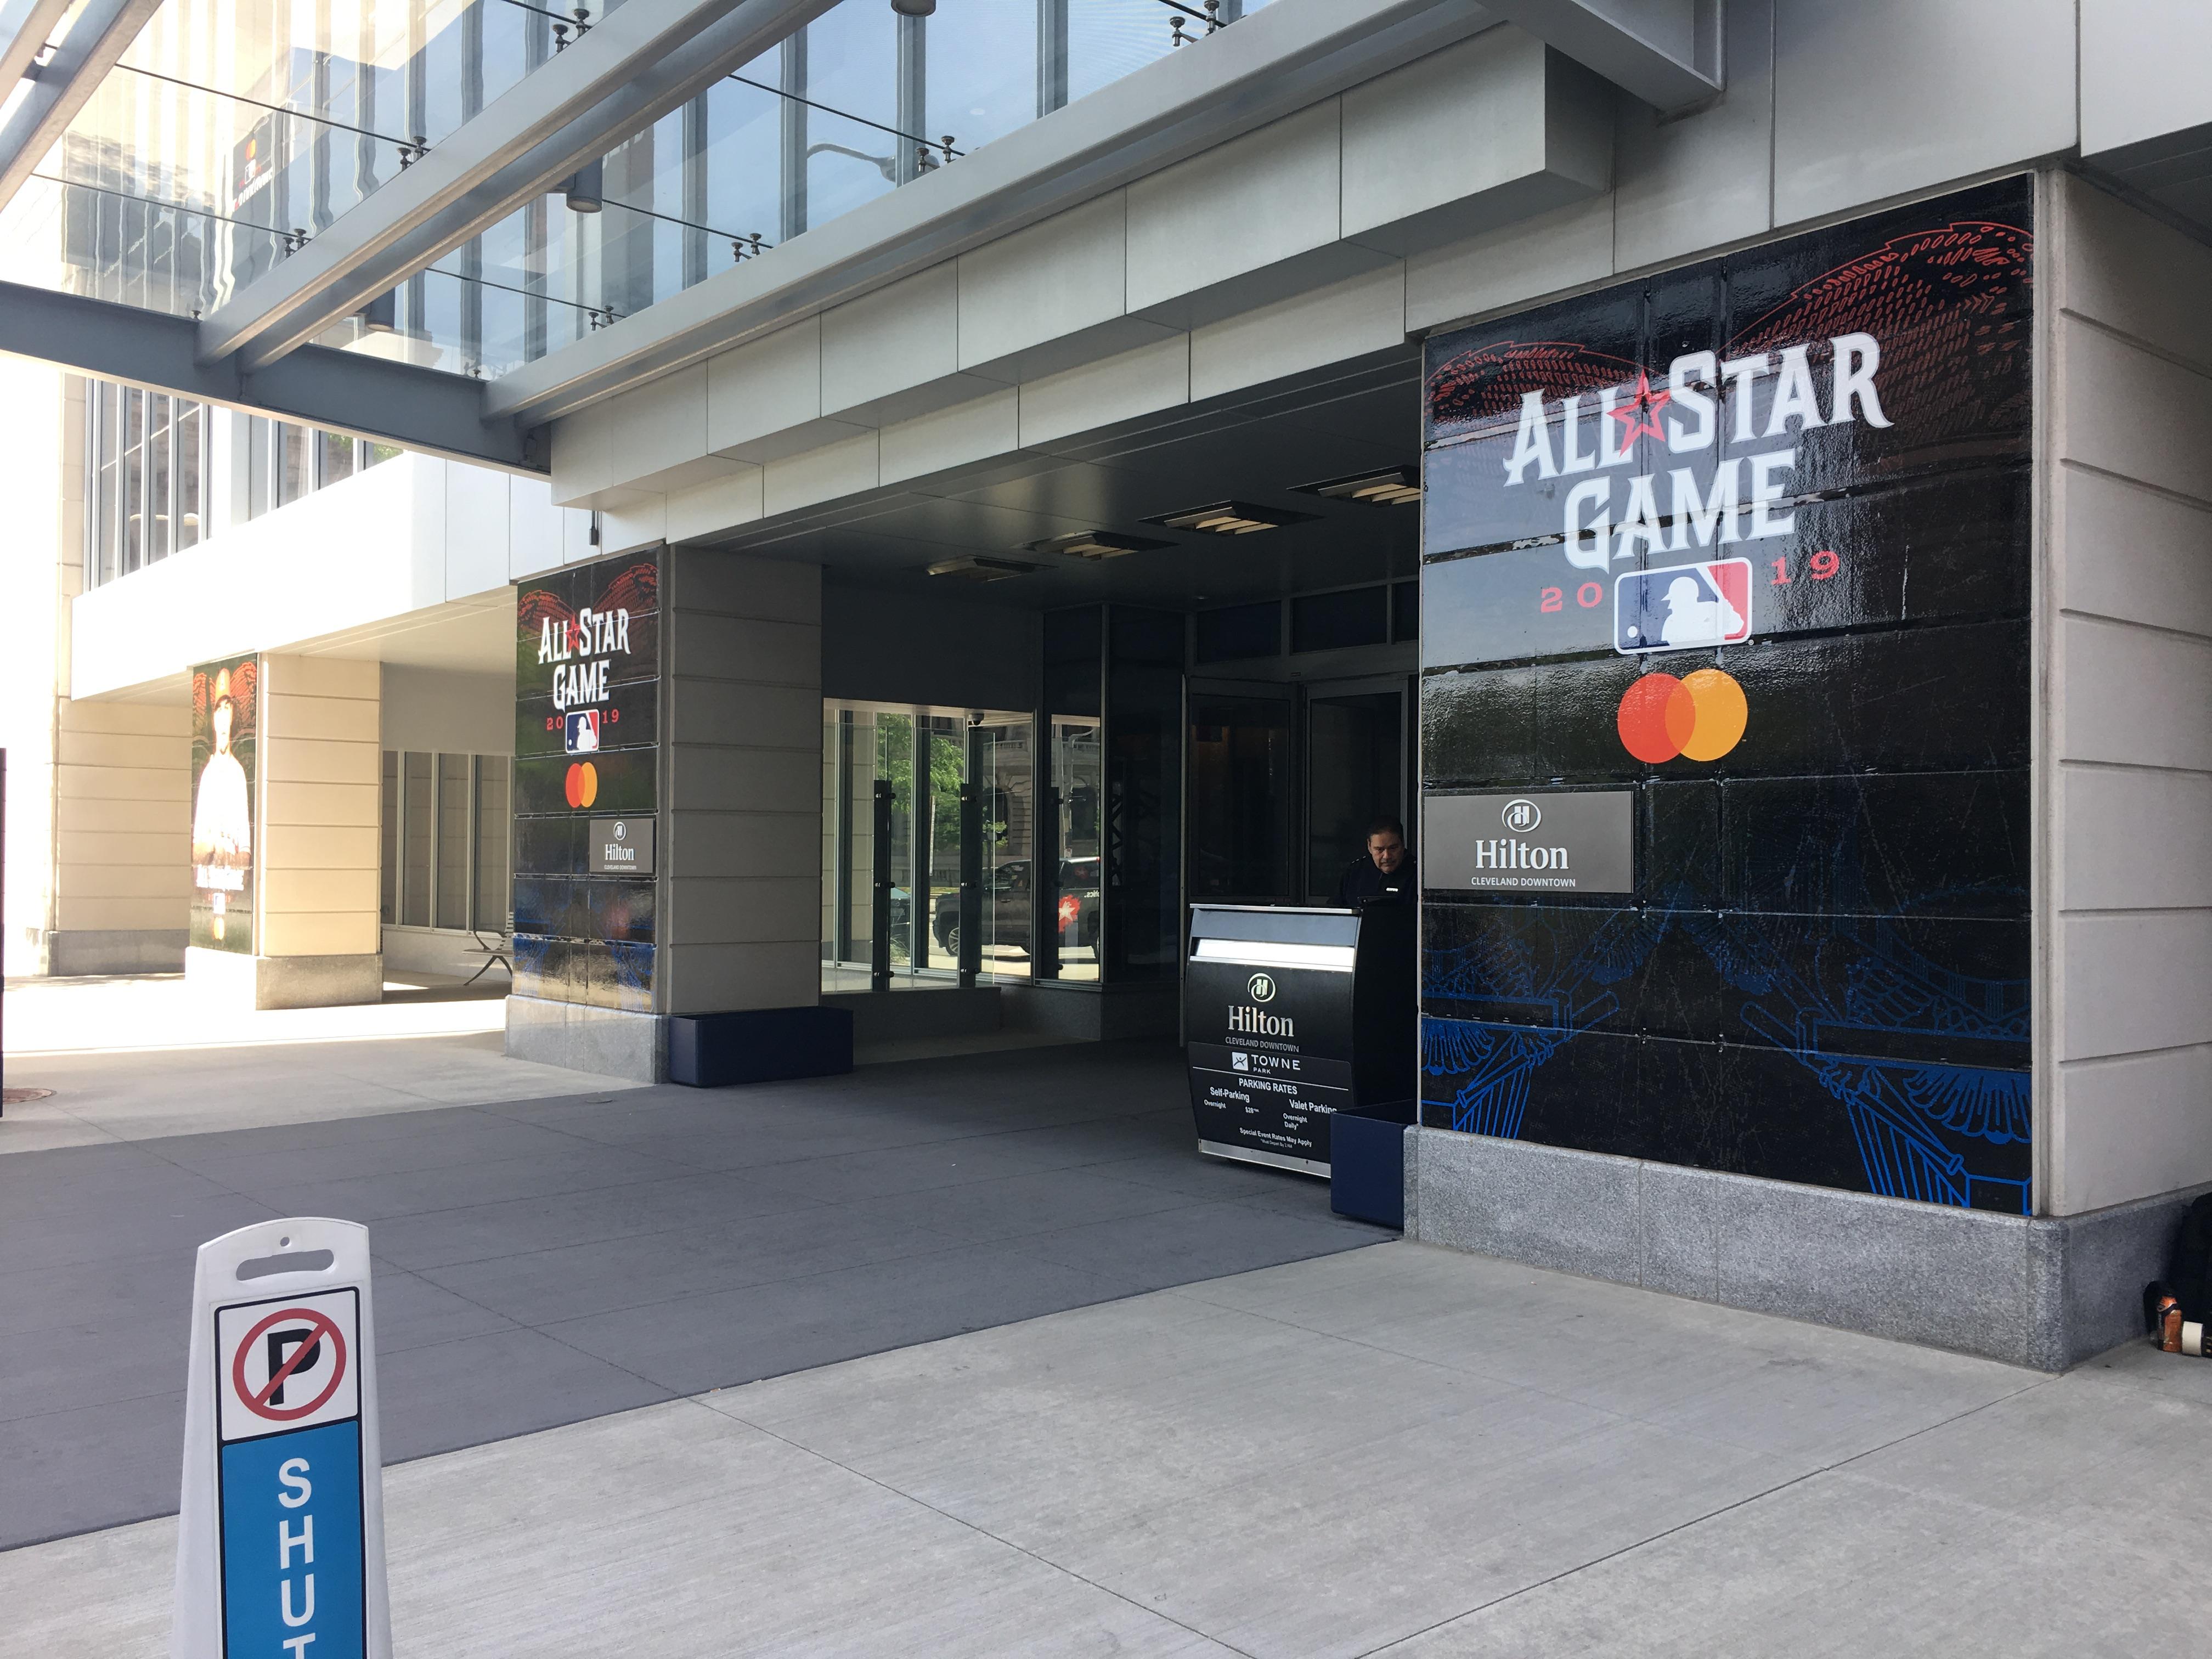 All Star Game wall graphics